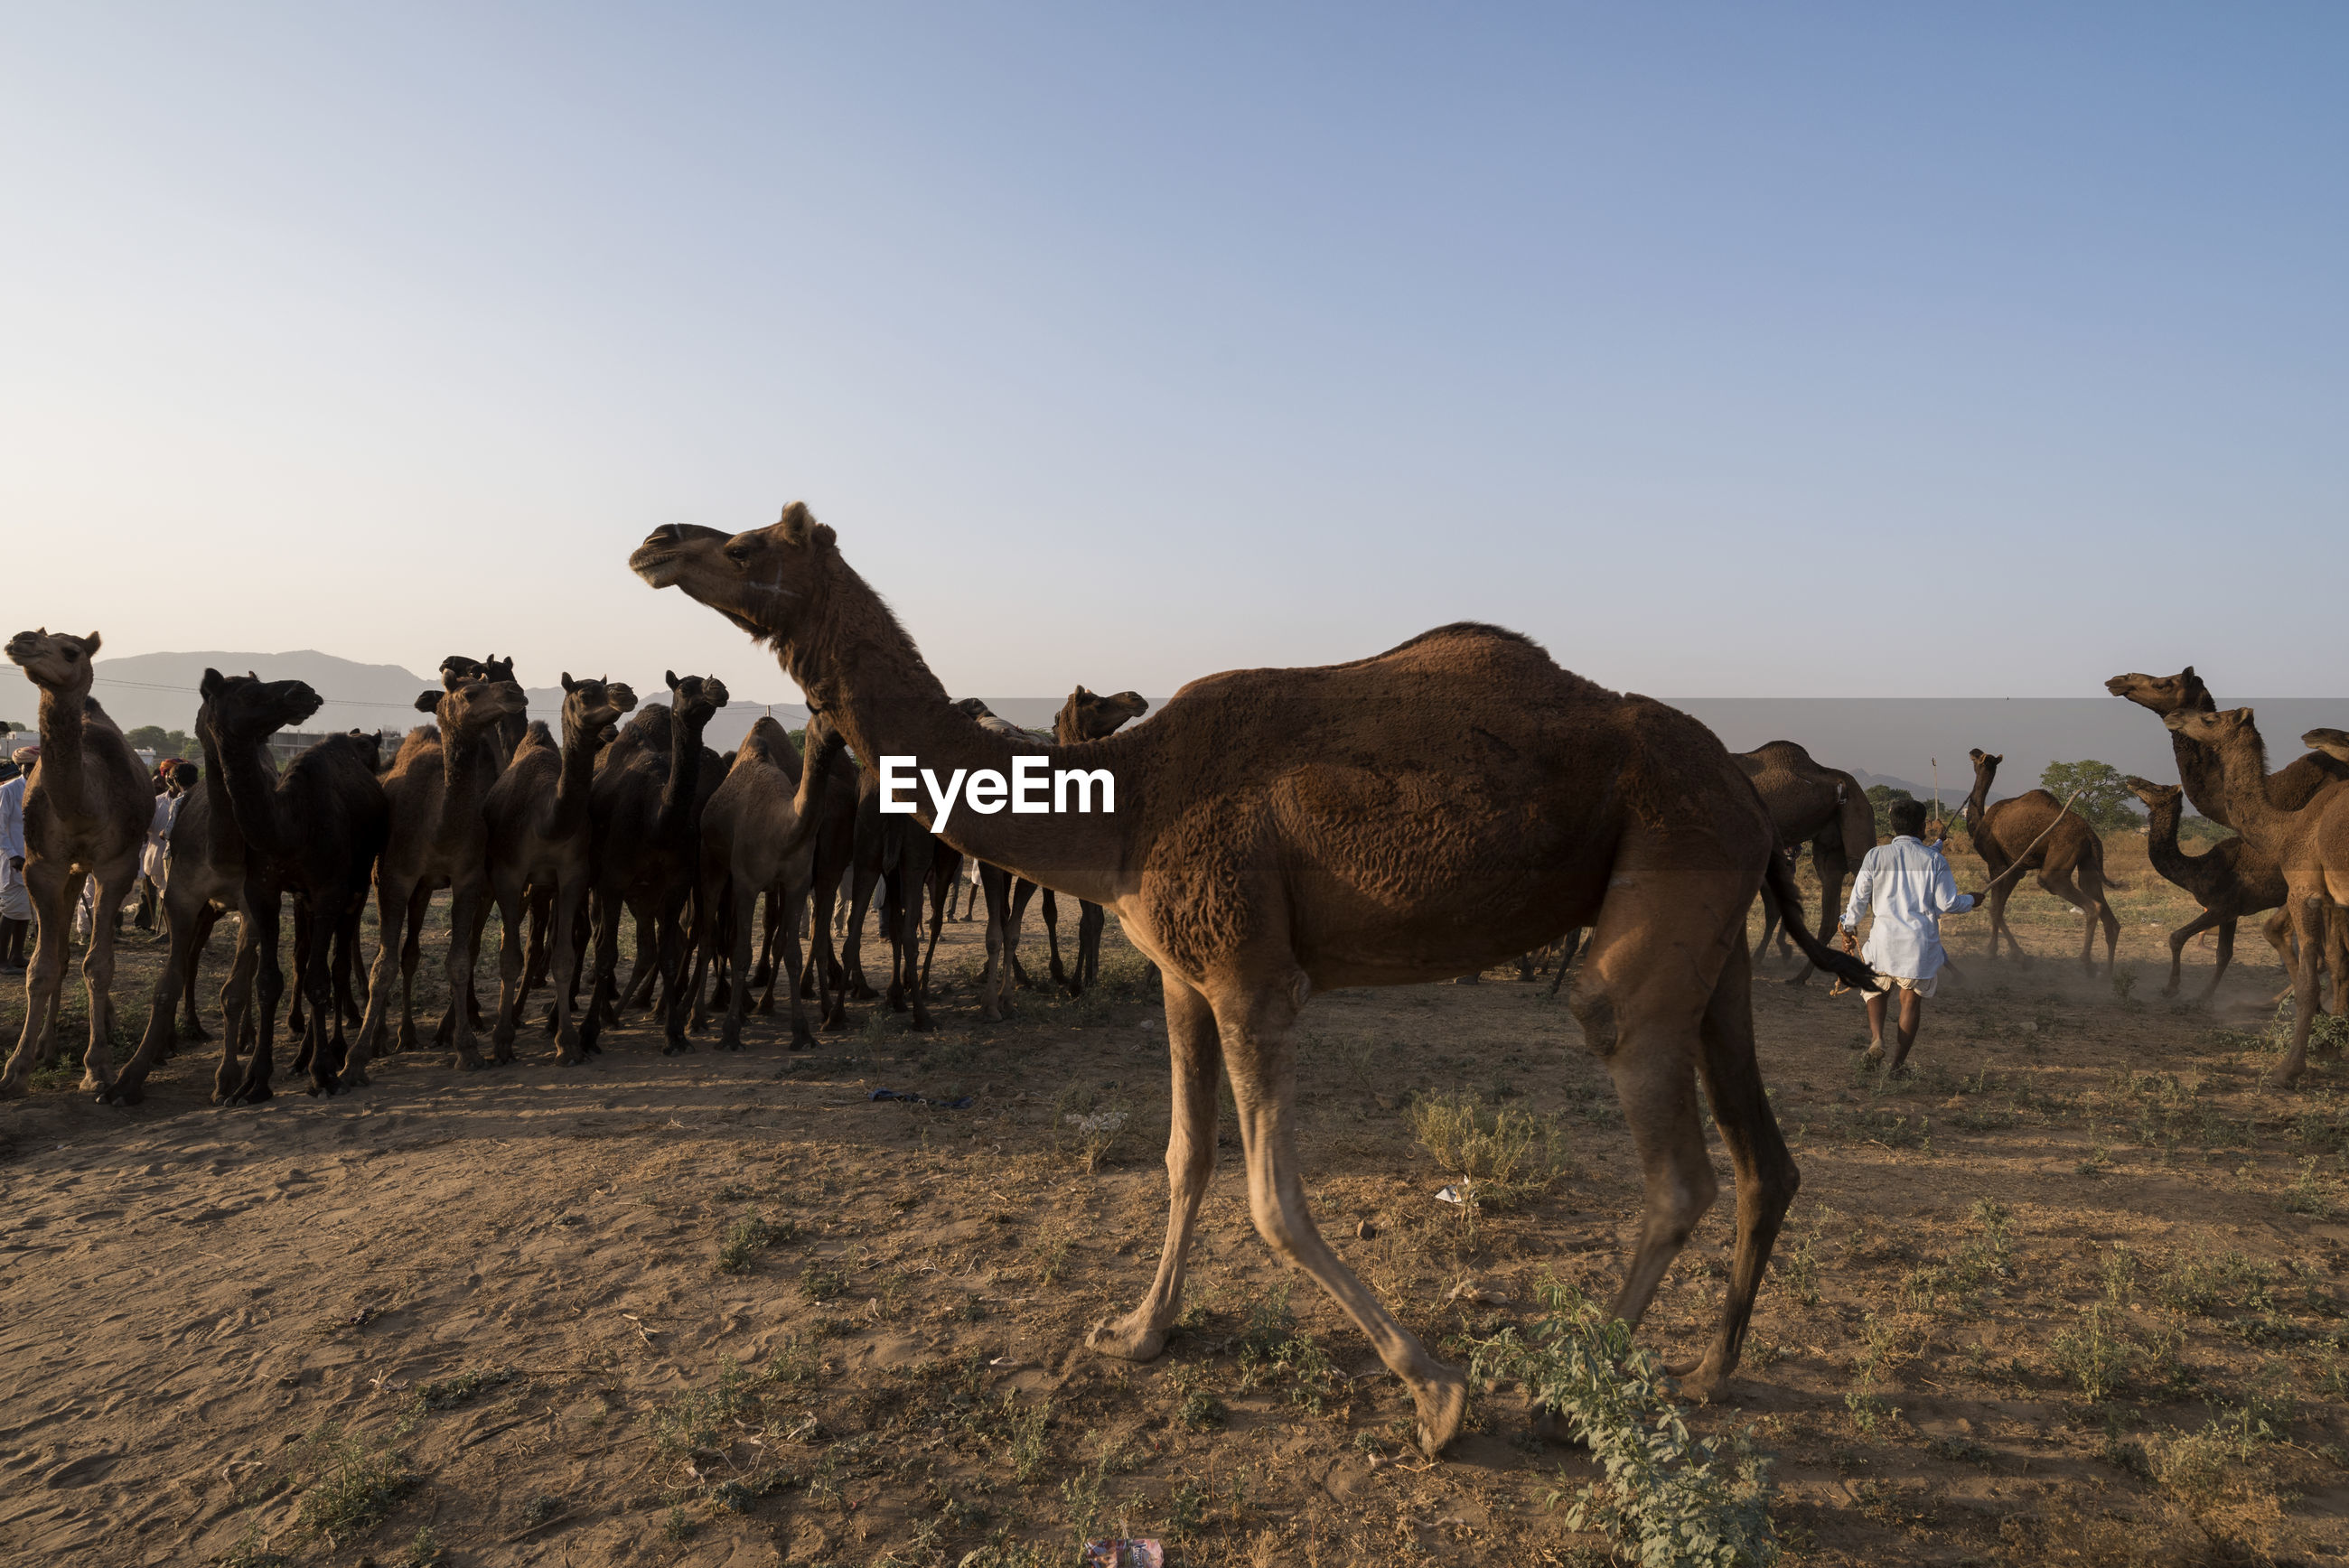 Camels standing on field against clear sky